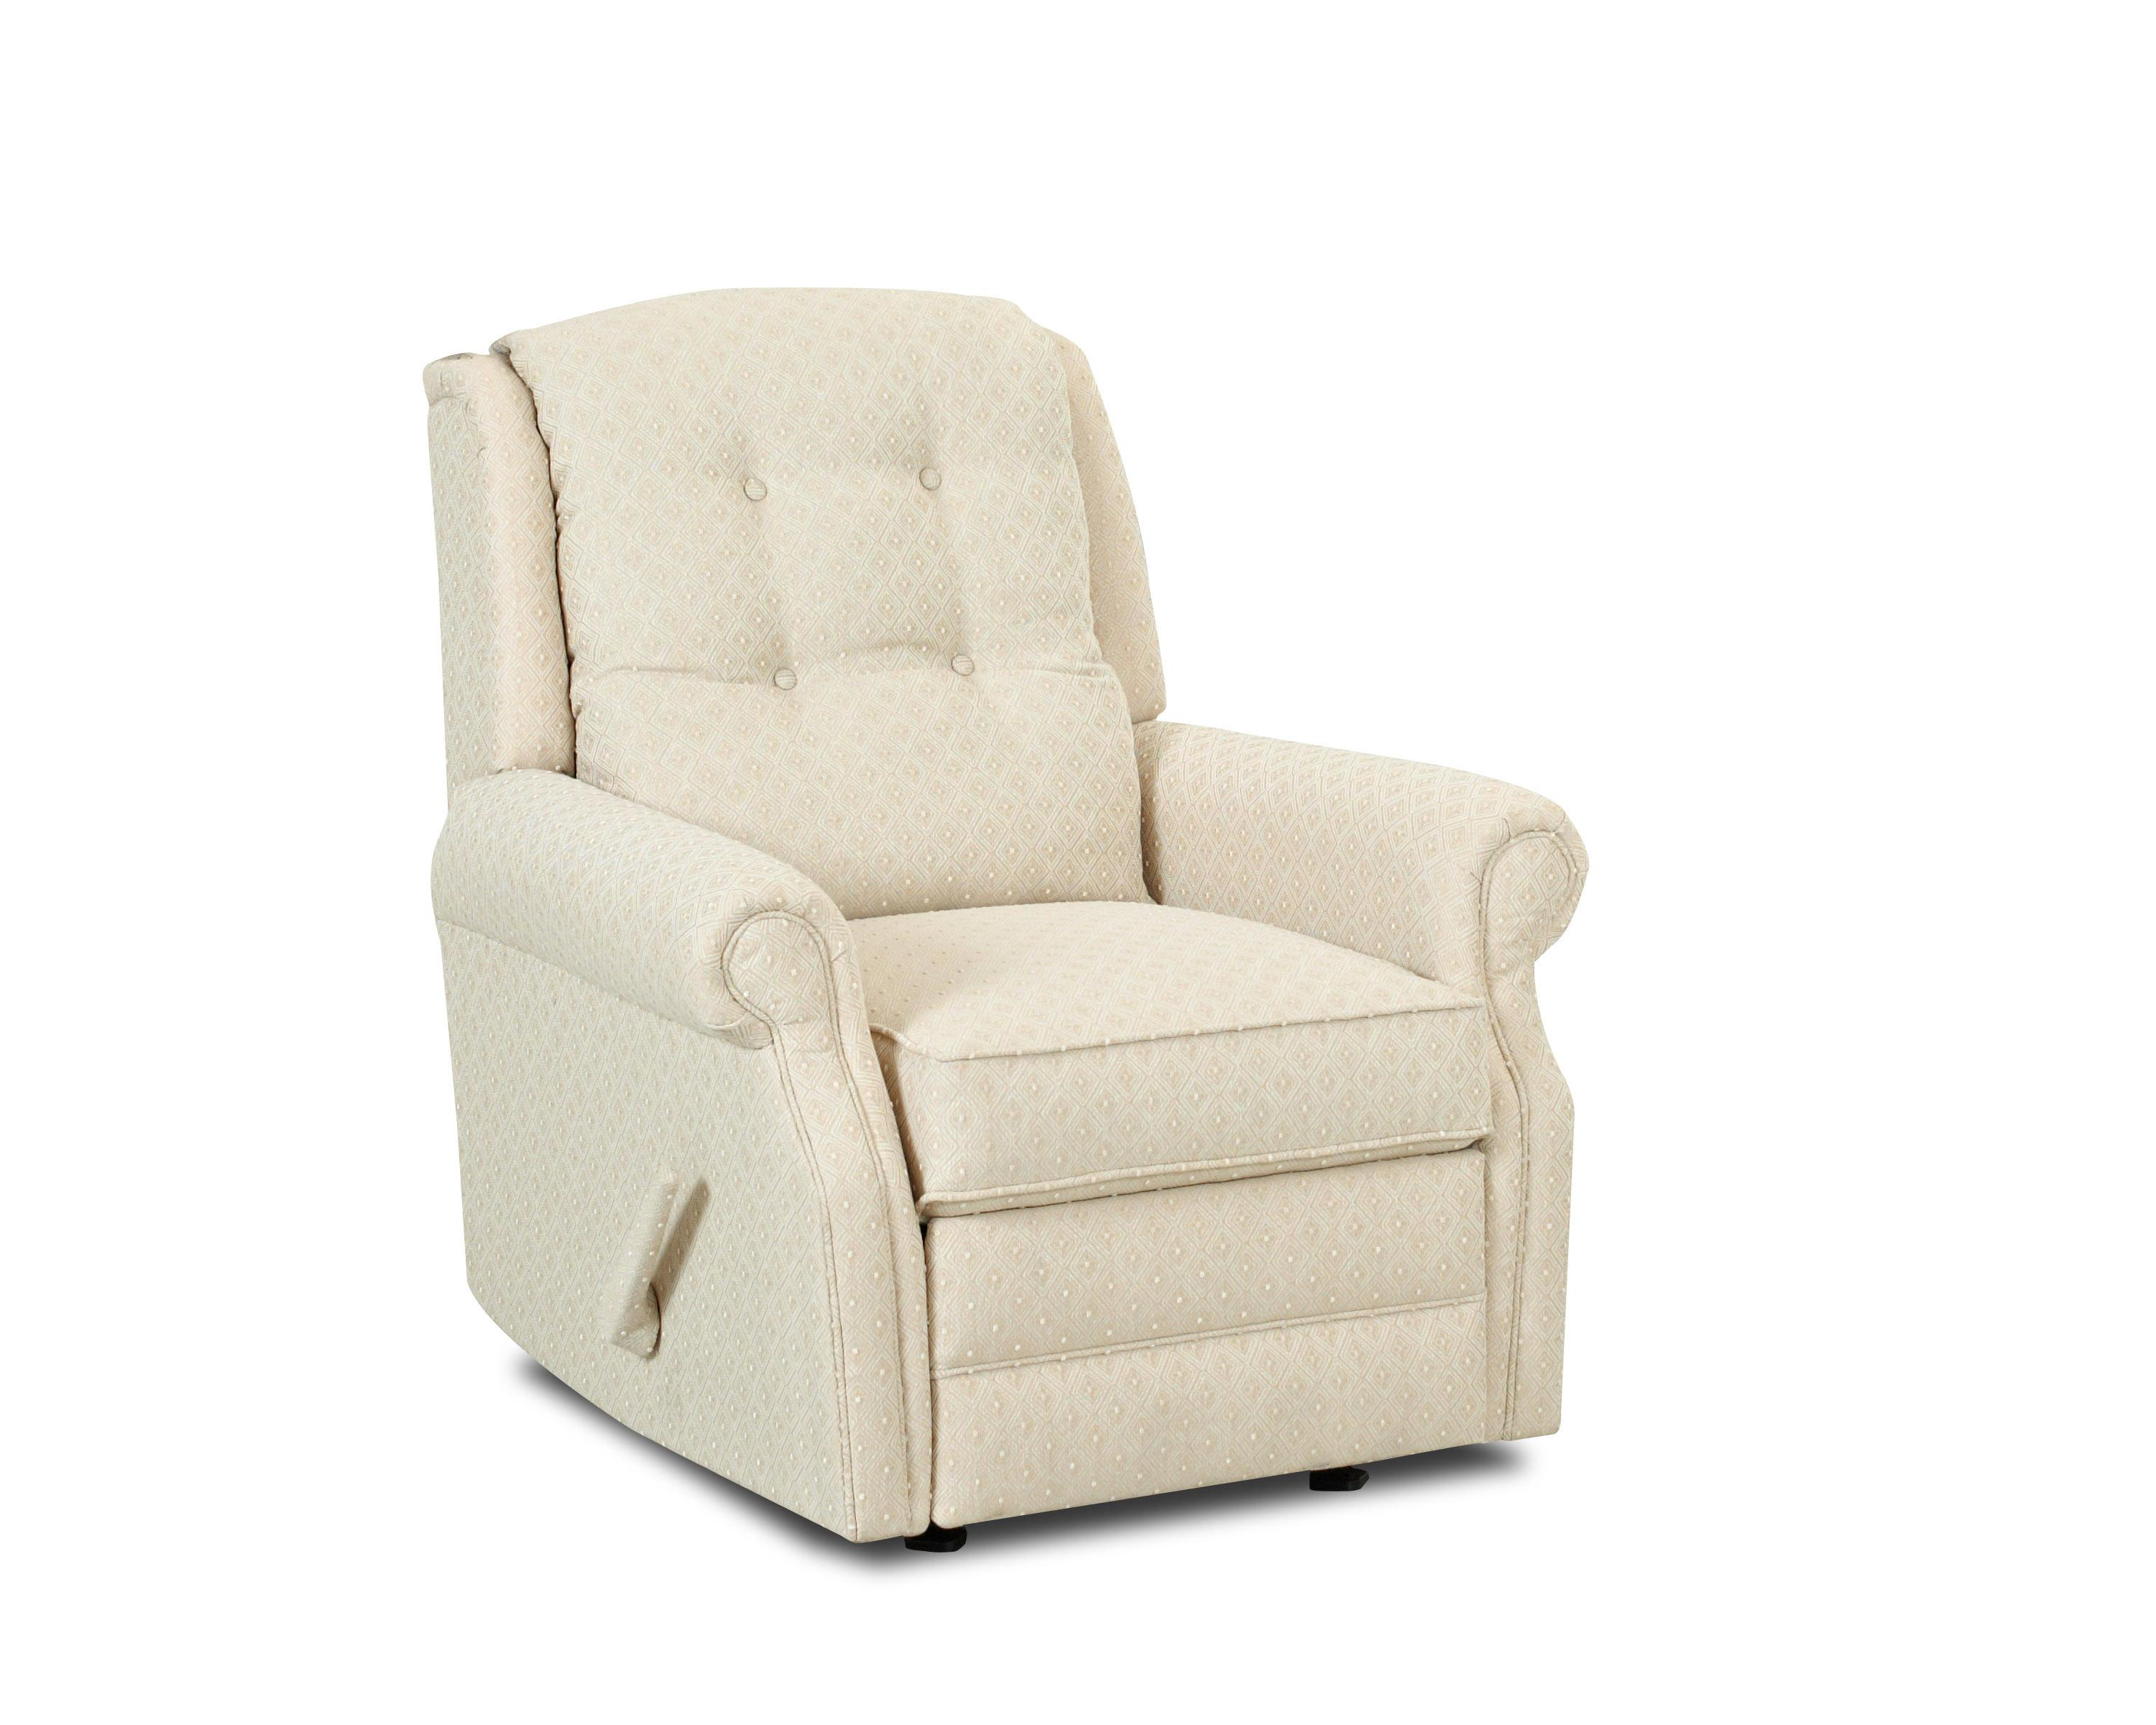 Transitional Manual Swivel Rocking Reclining Chair with Button ...